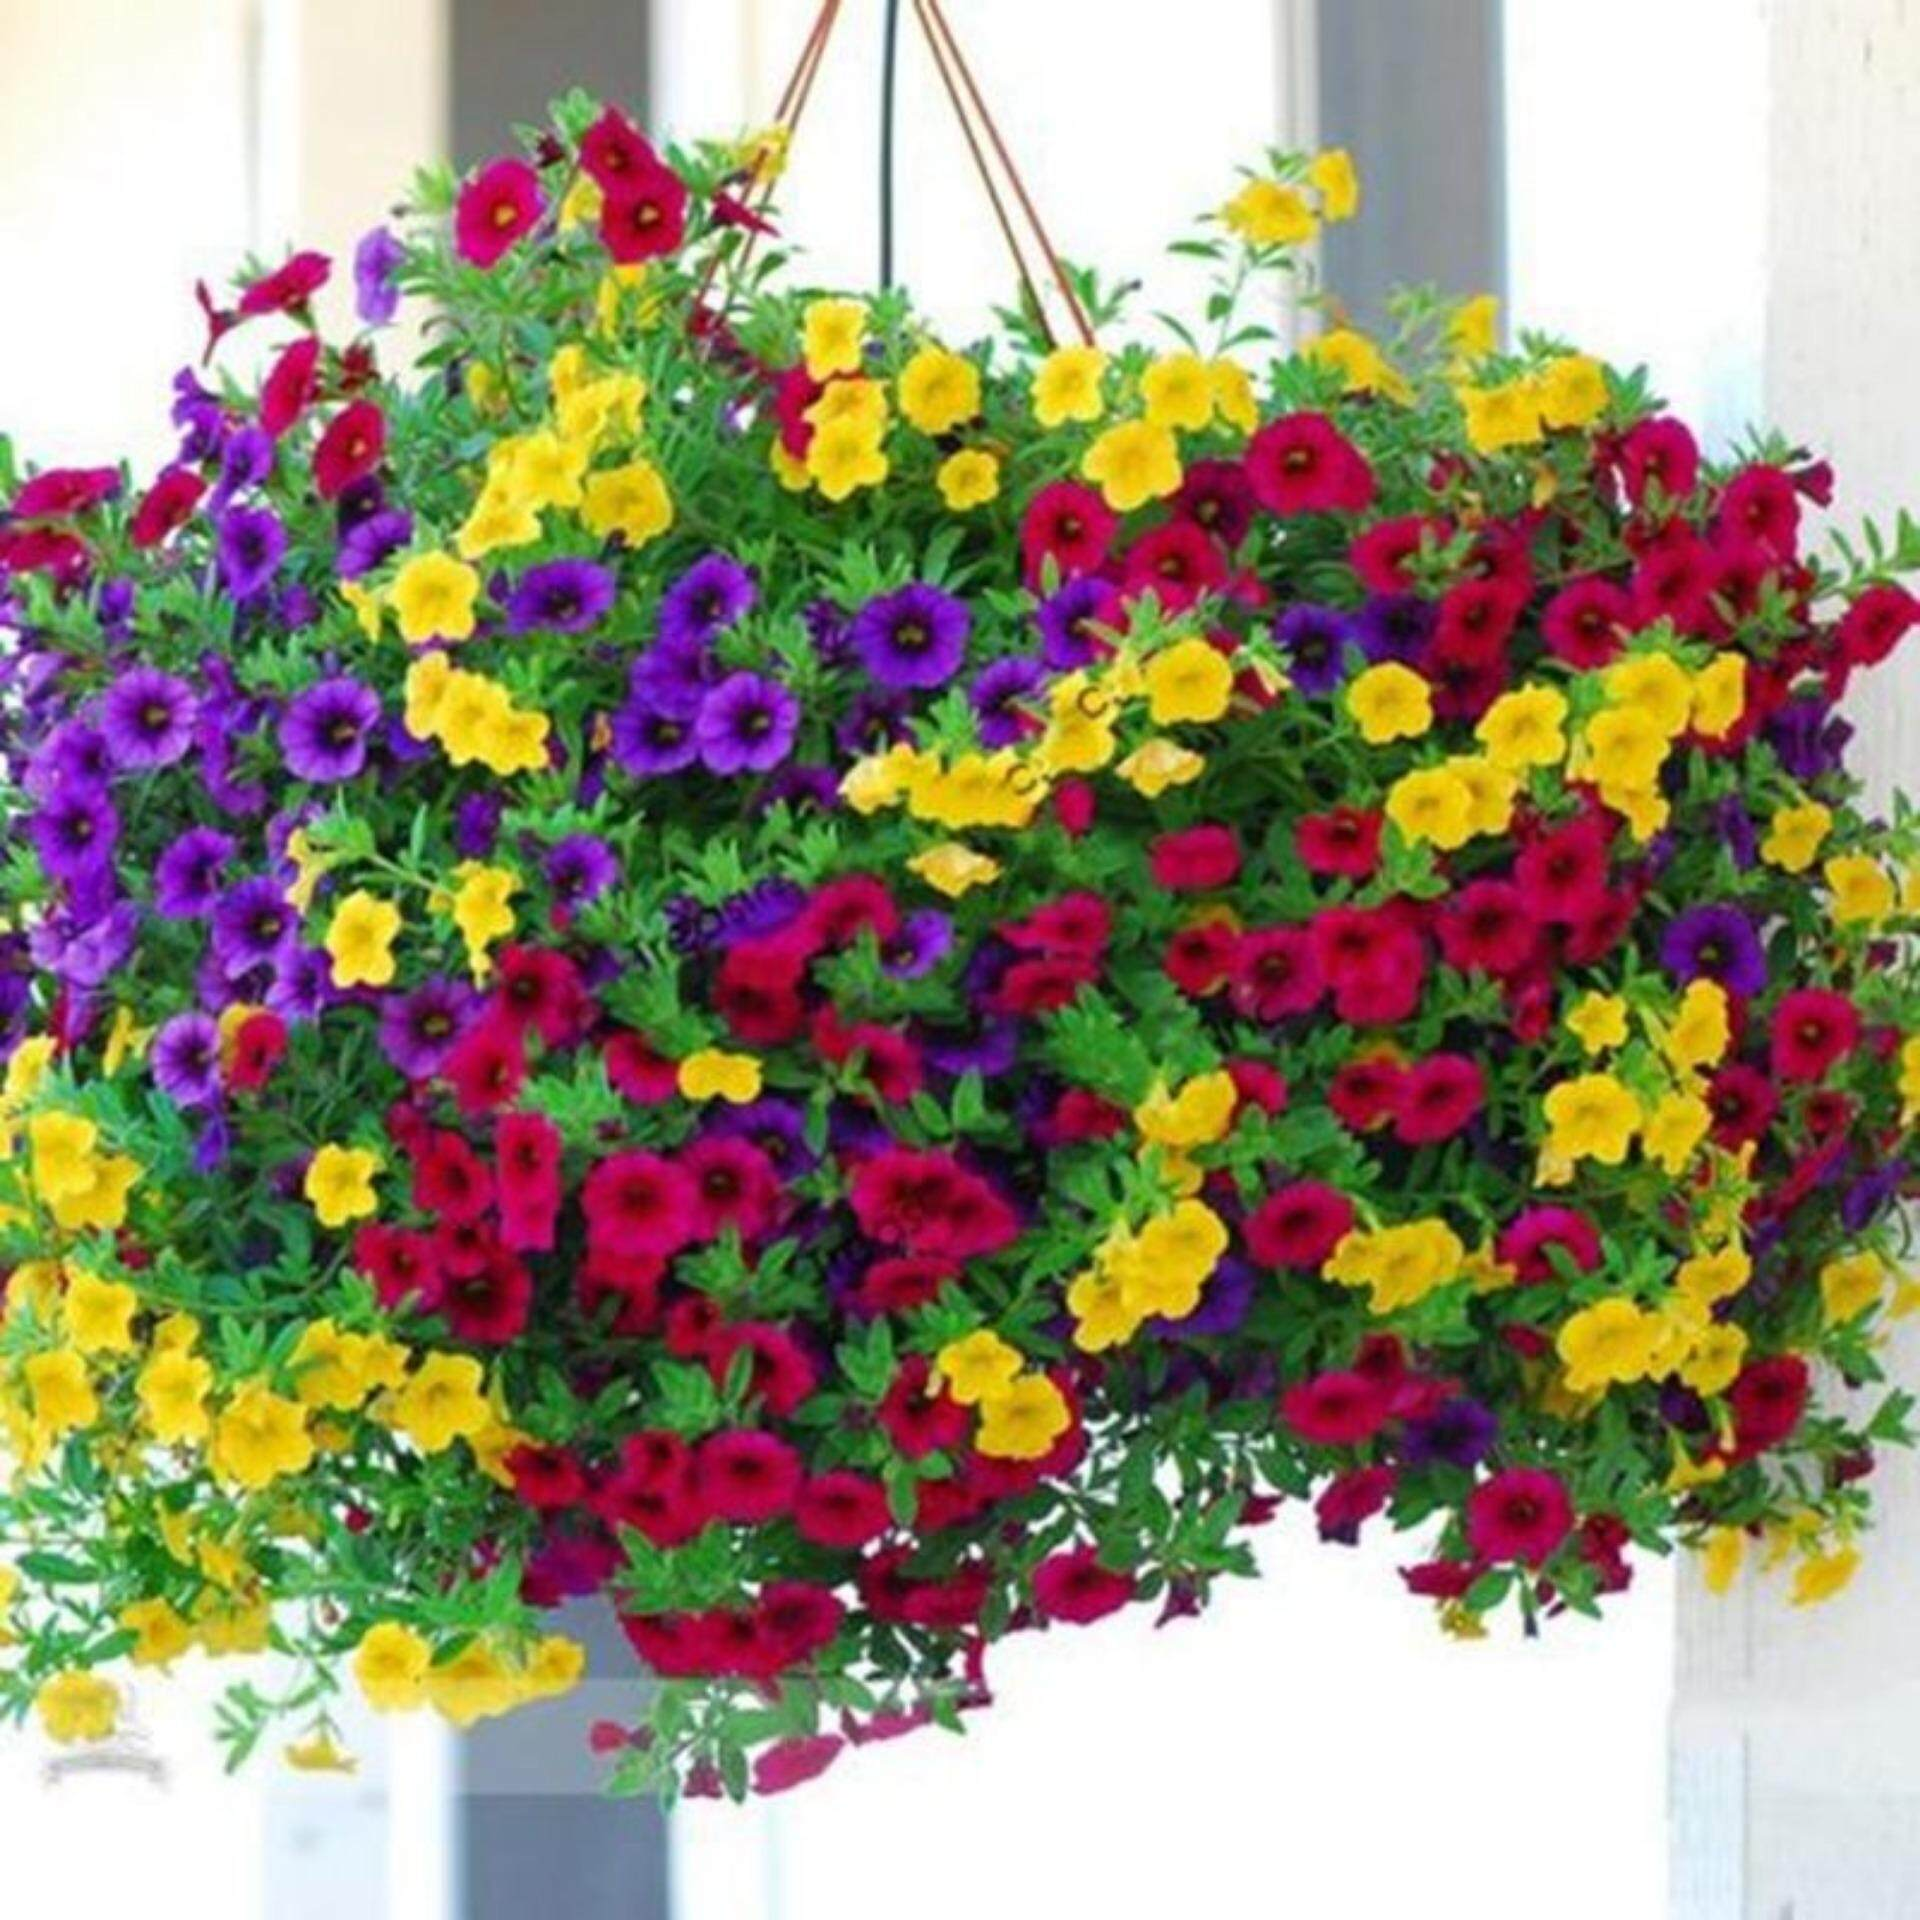 Sissi 1 pack 100 mixed petunia seeds heirloom hanging petunia garden flowers